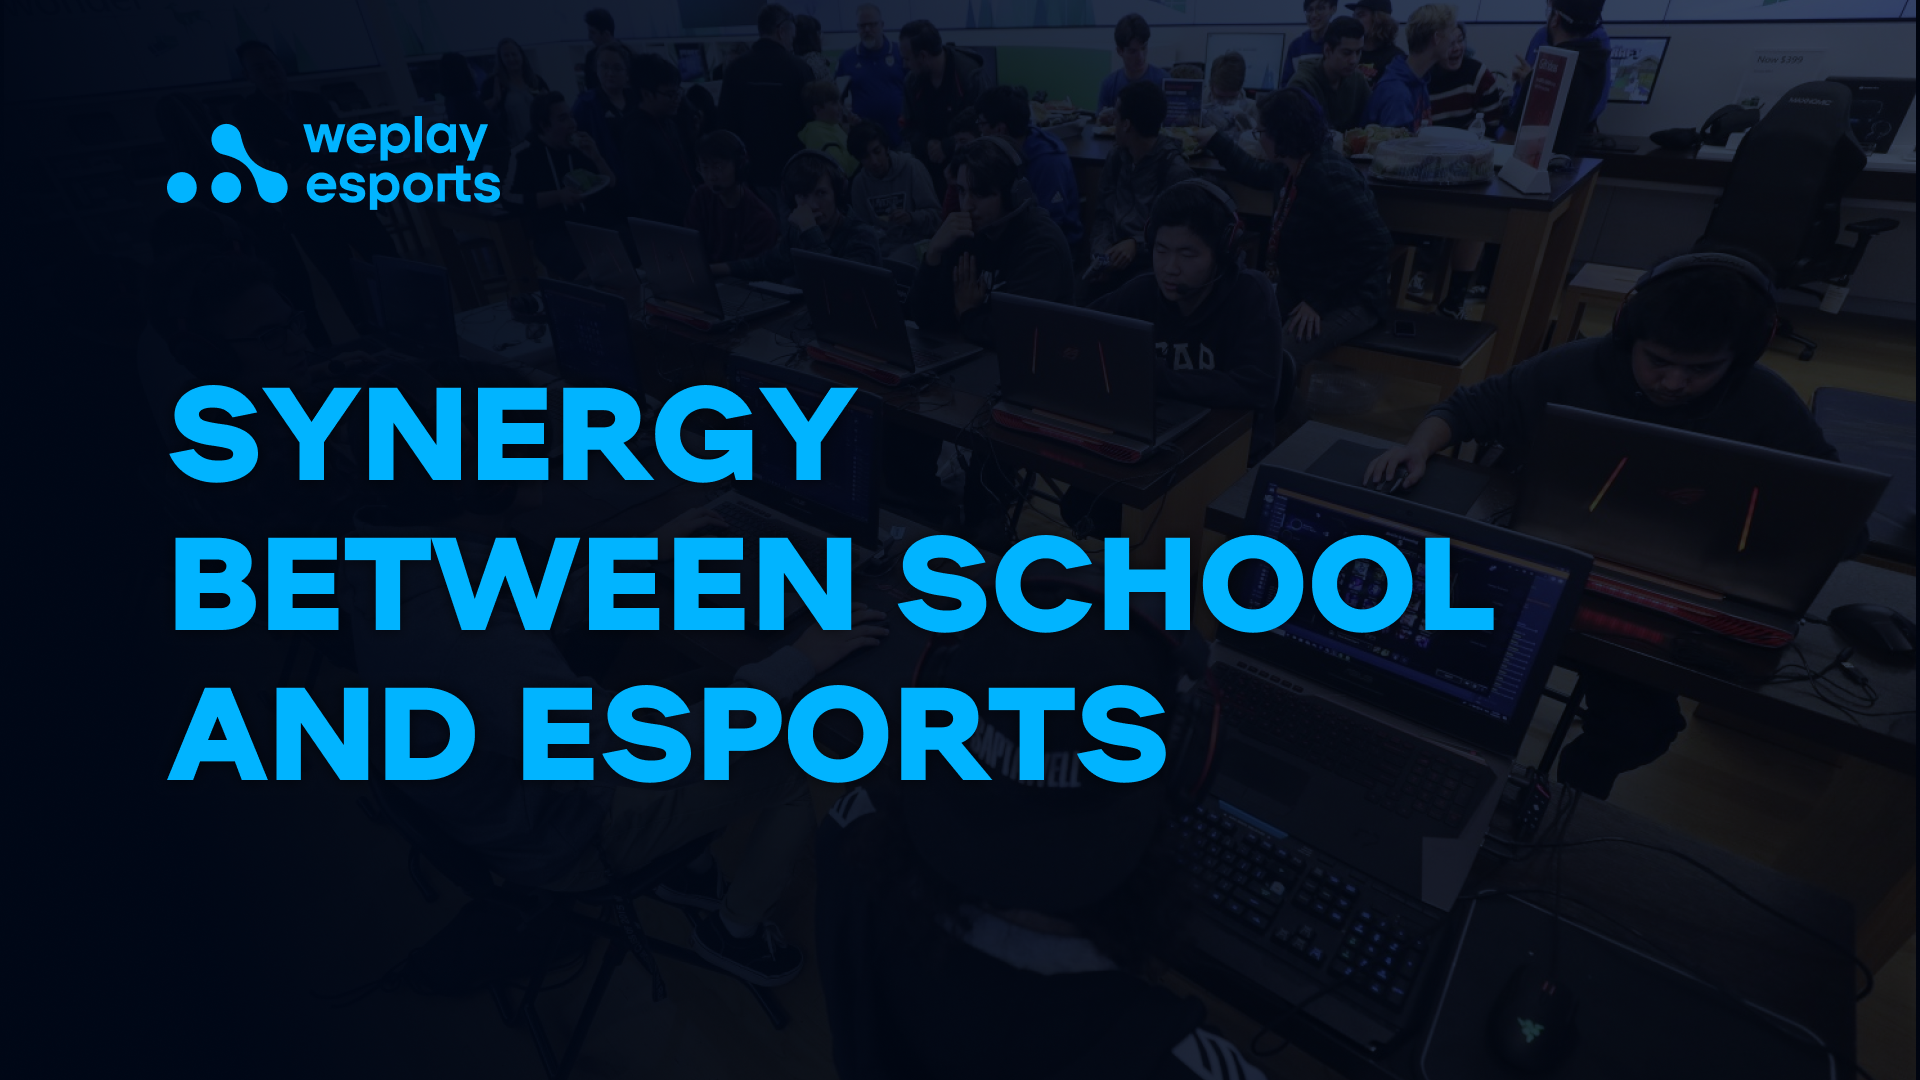 Synergy between school and esports